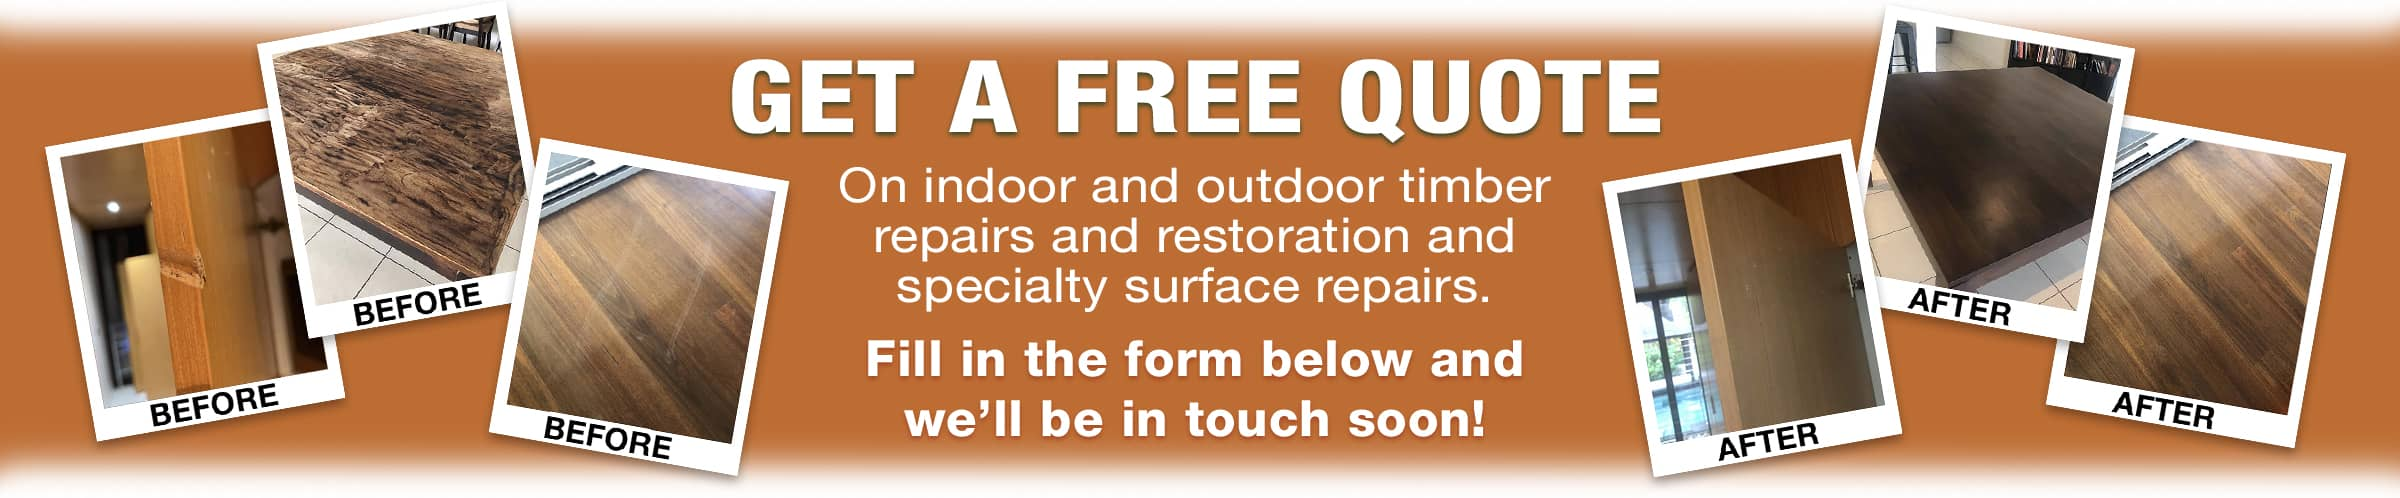 Timber Doctor Get a Free Quote